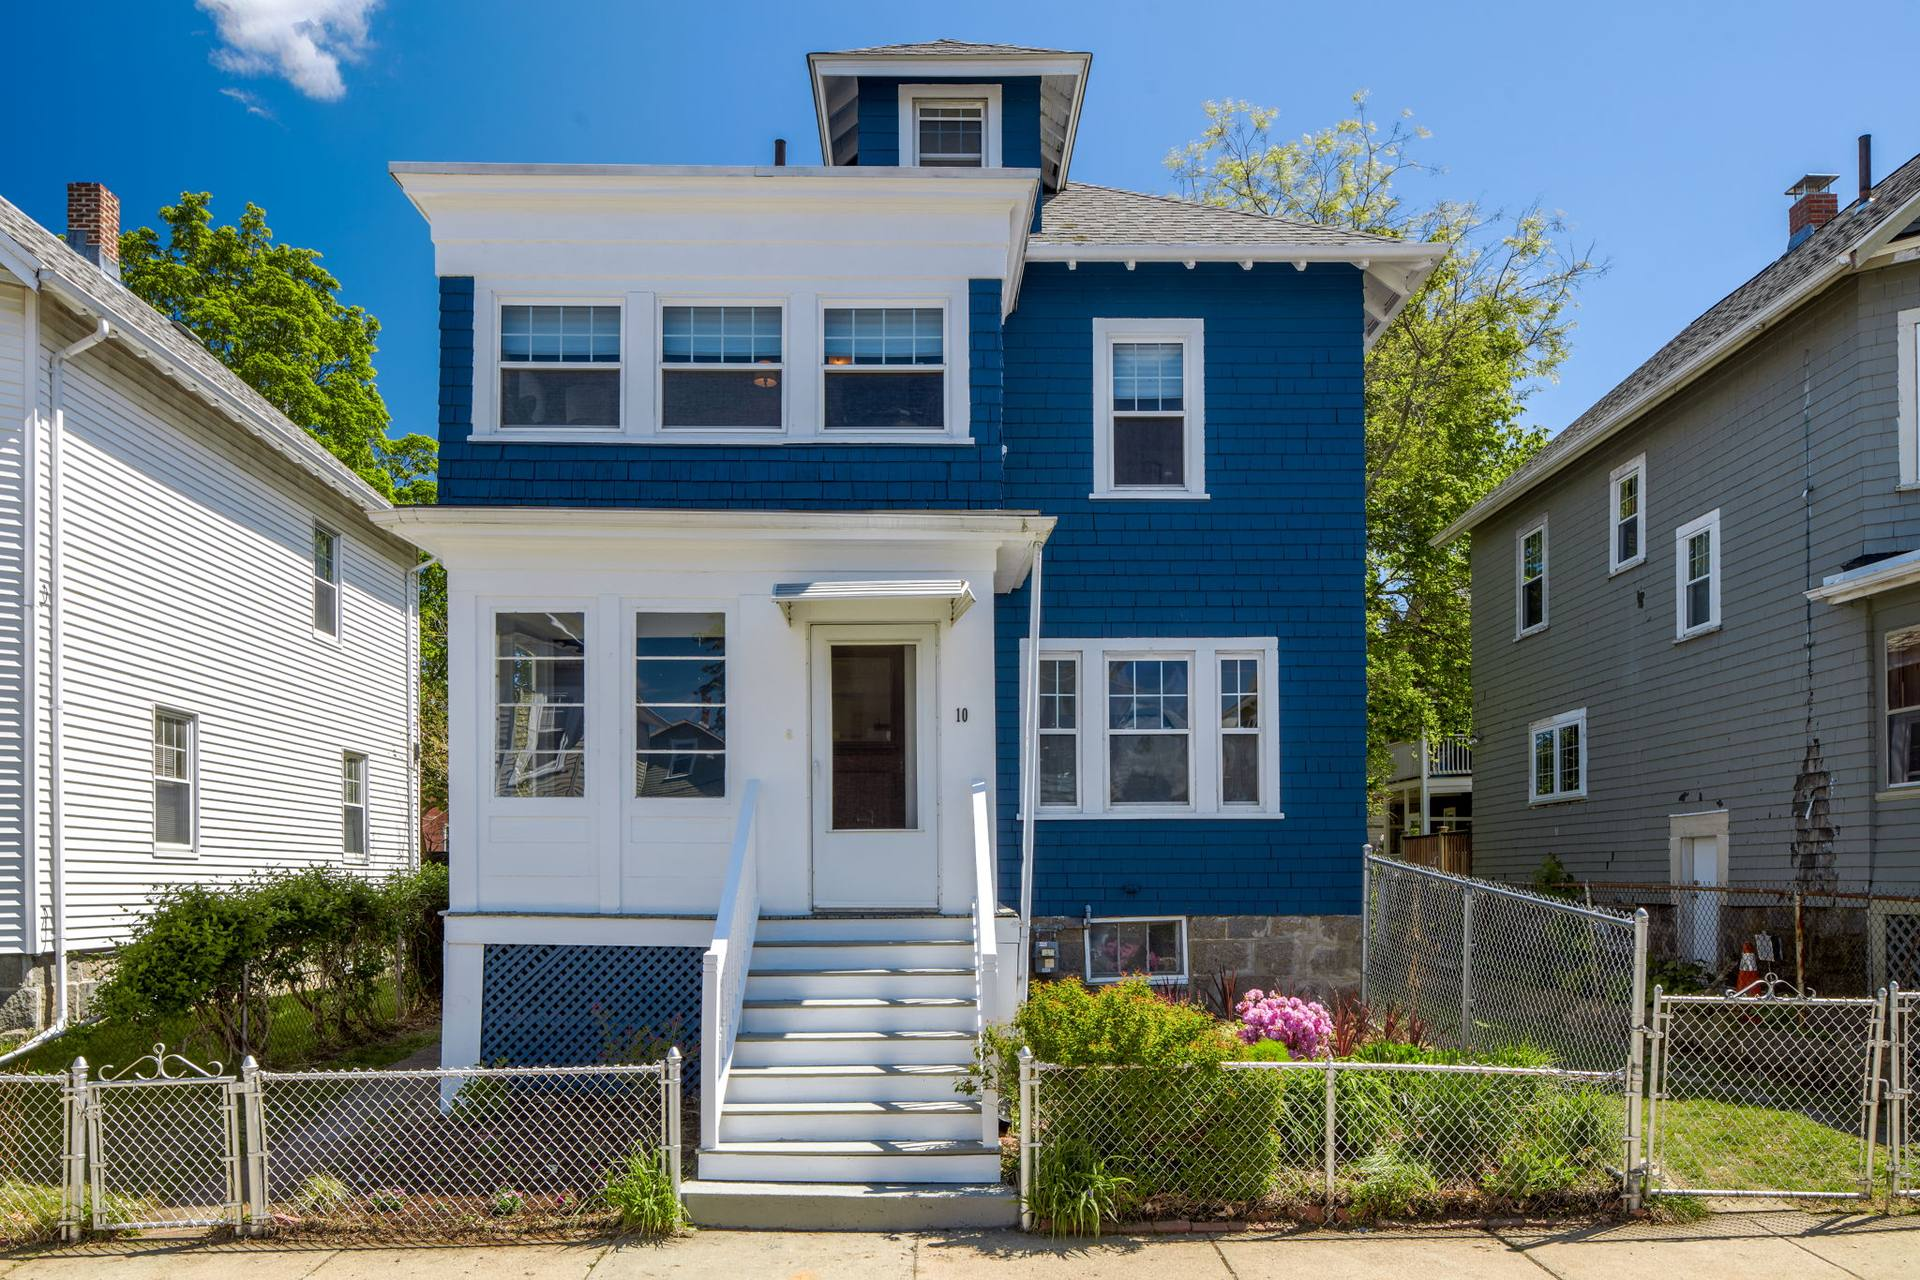 10 Clematis St, Boston, MA 02122, US